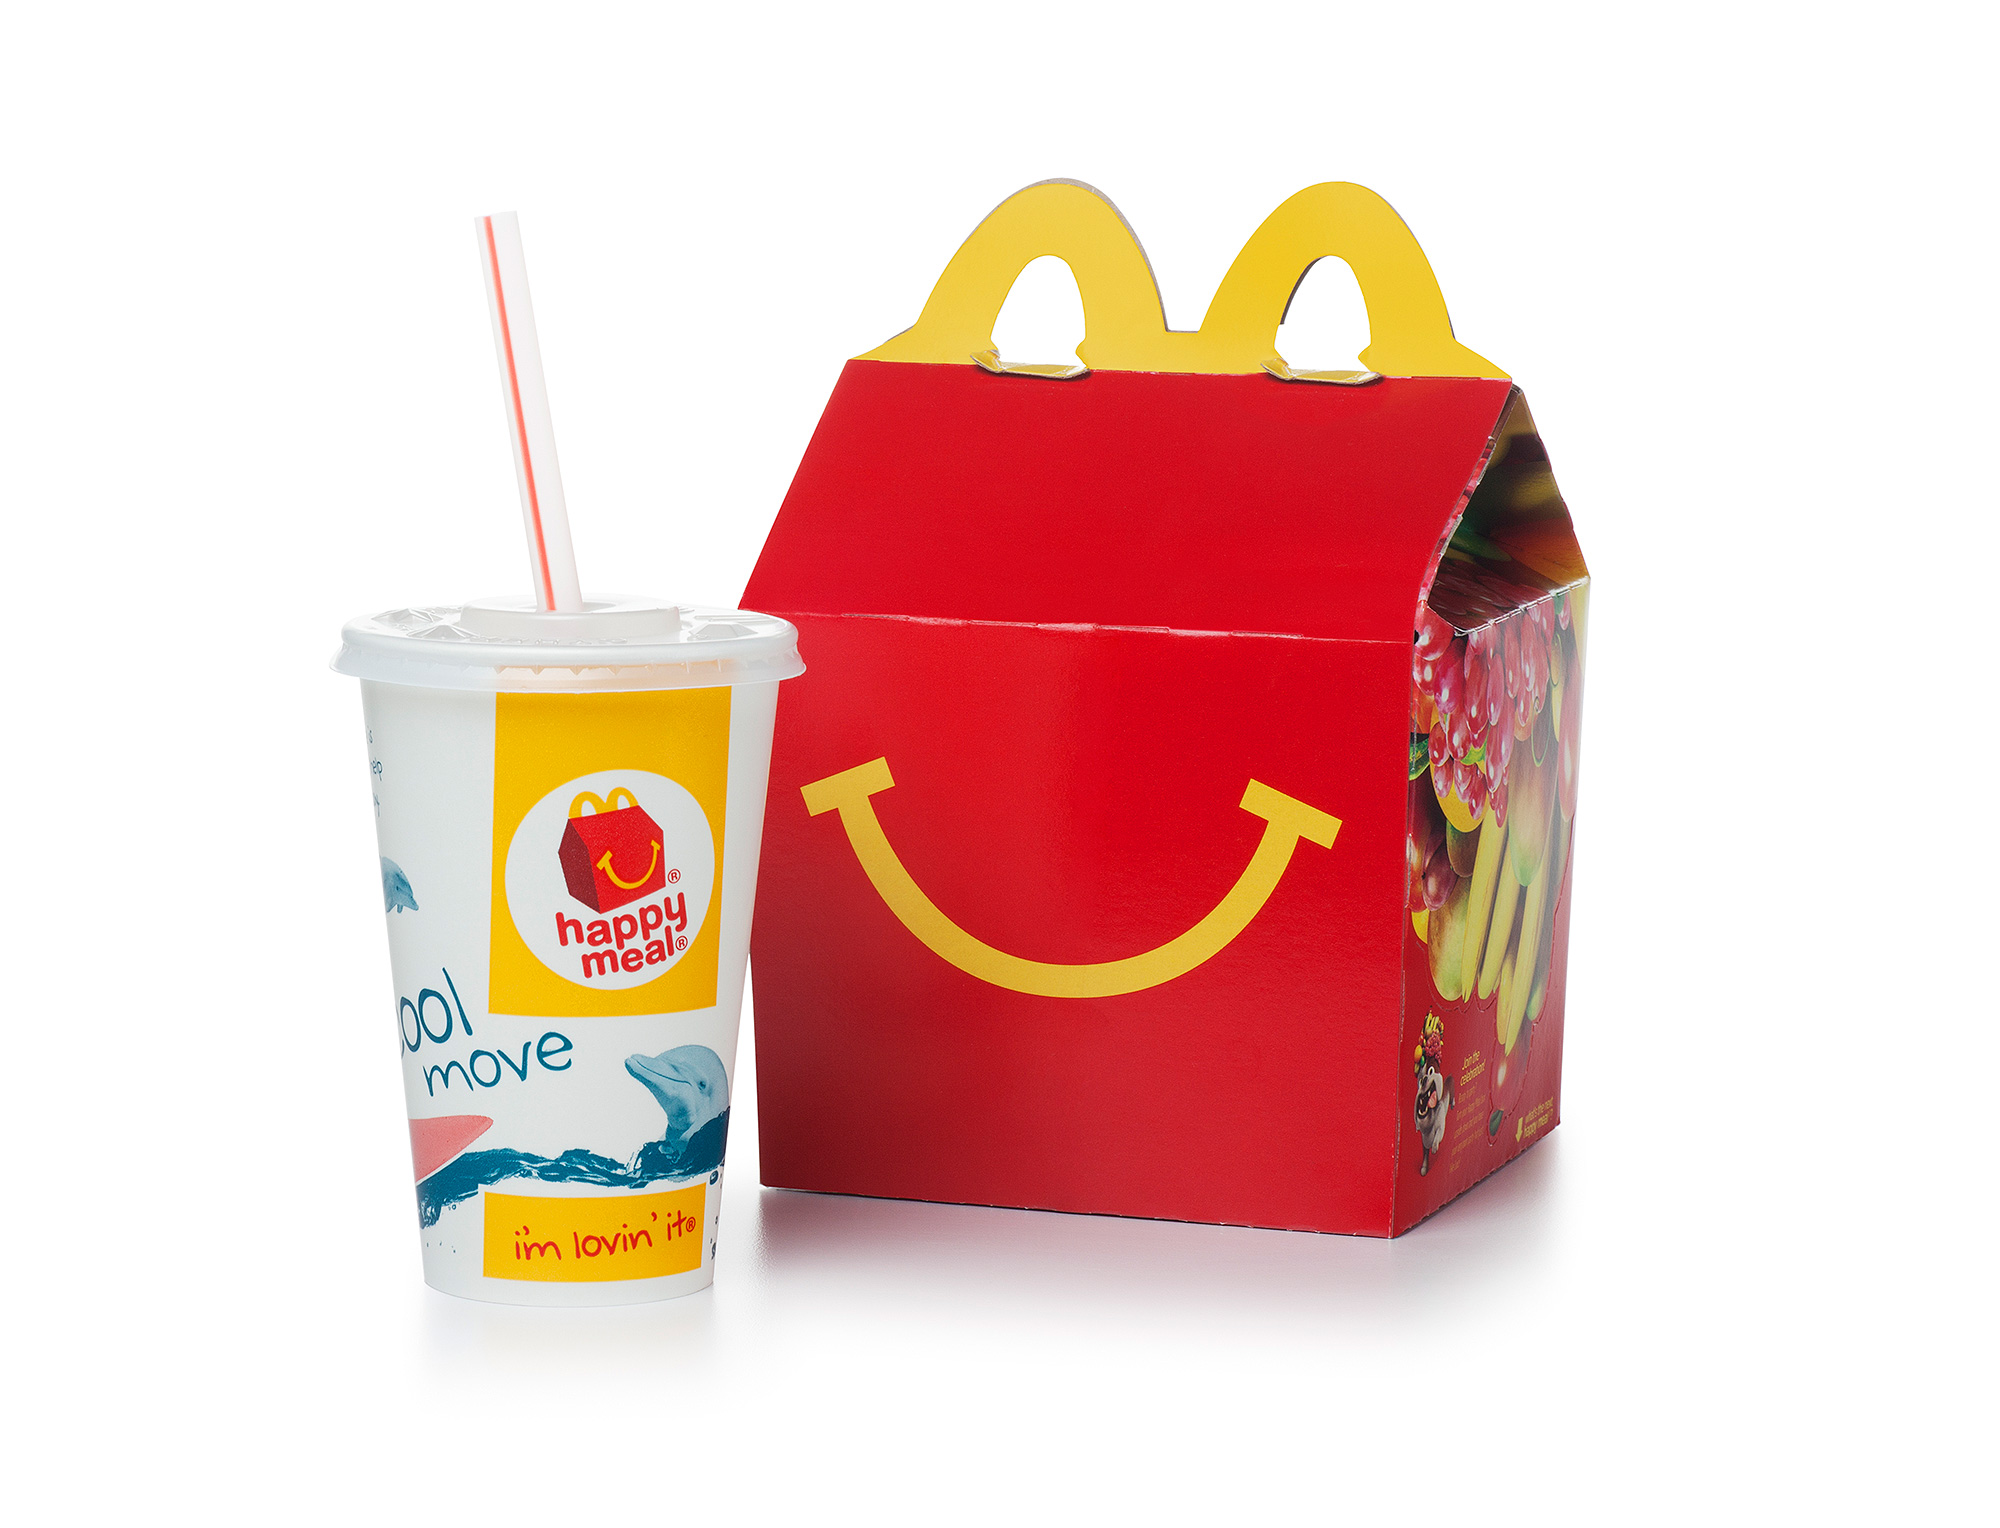 McDonalds Happy Meal on White